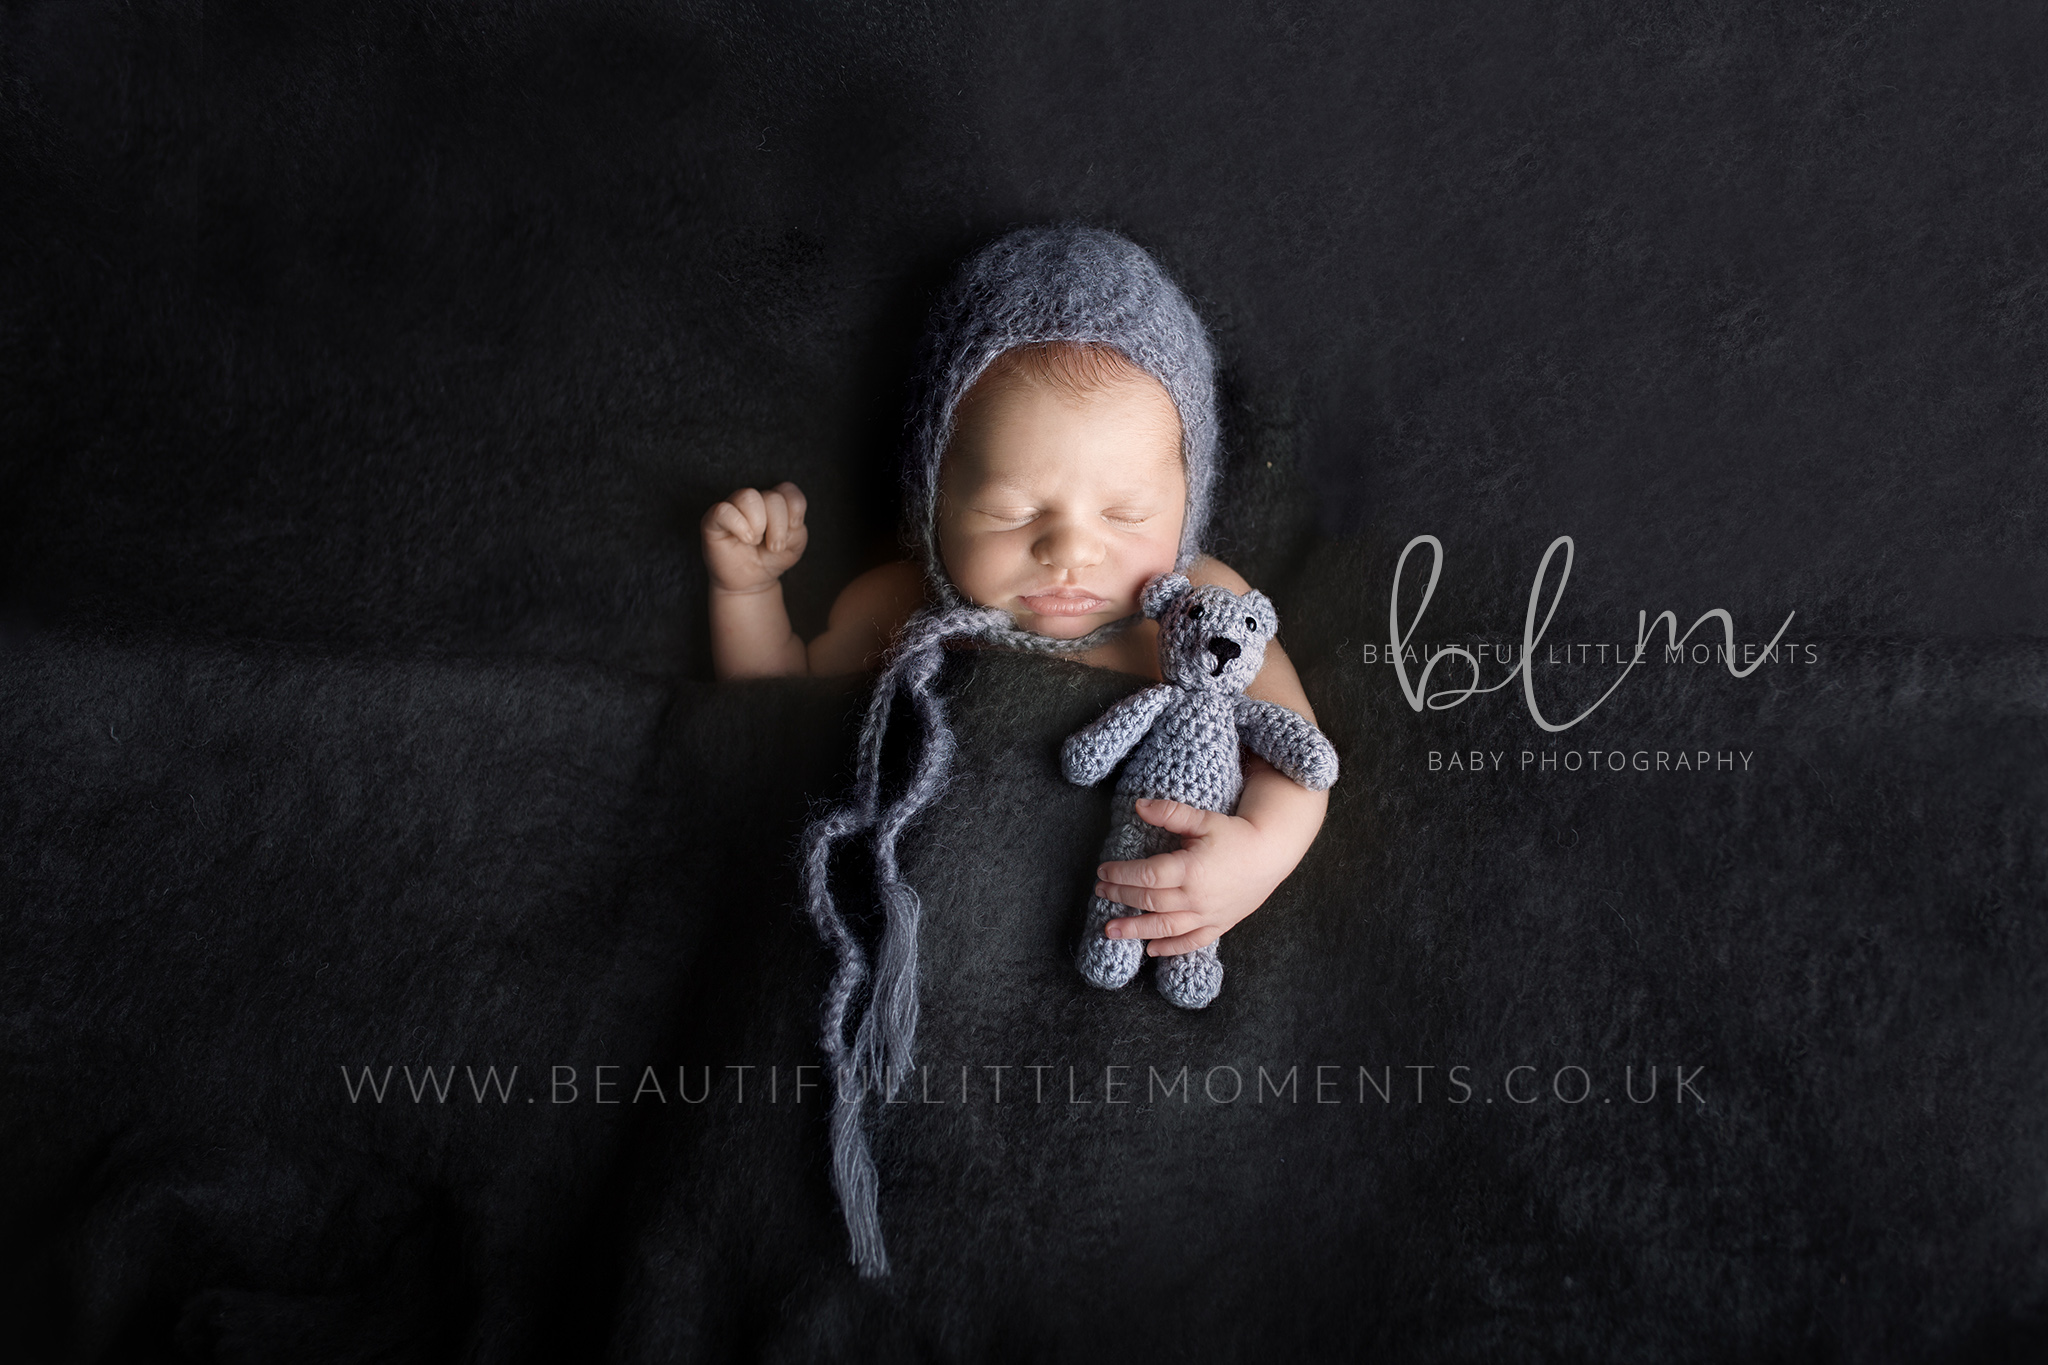 Hypnobirthing photography newborn baby antenatal postnatal taking photos